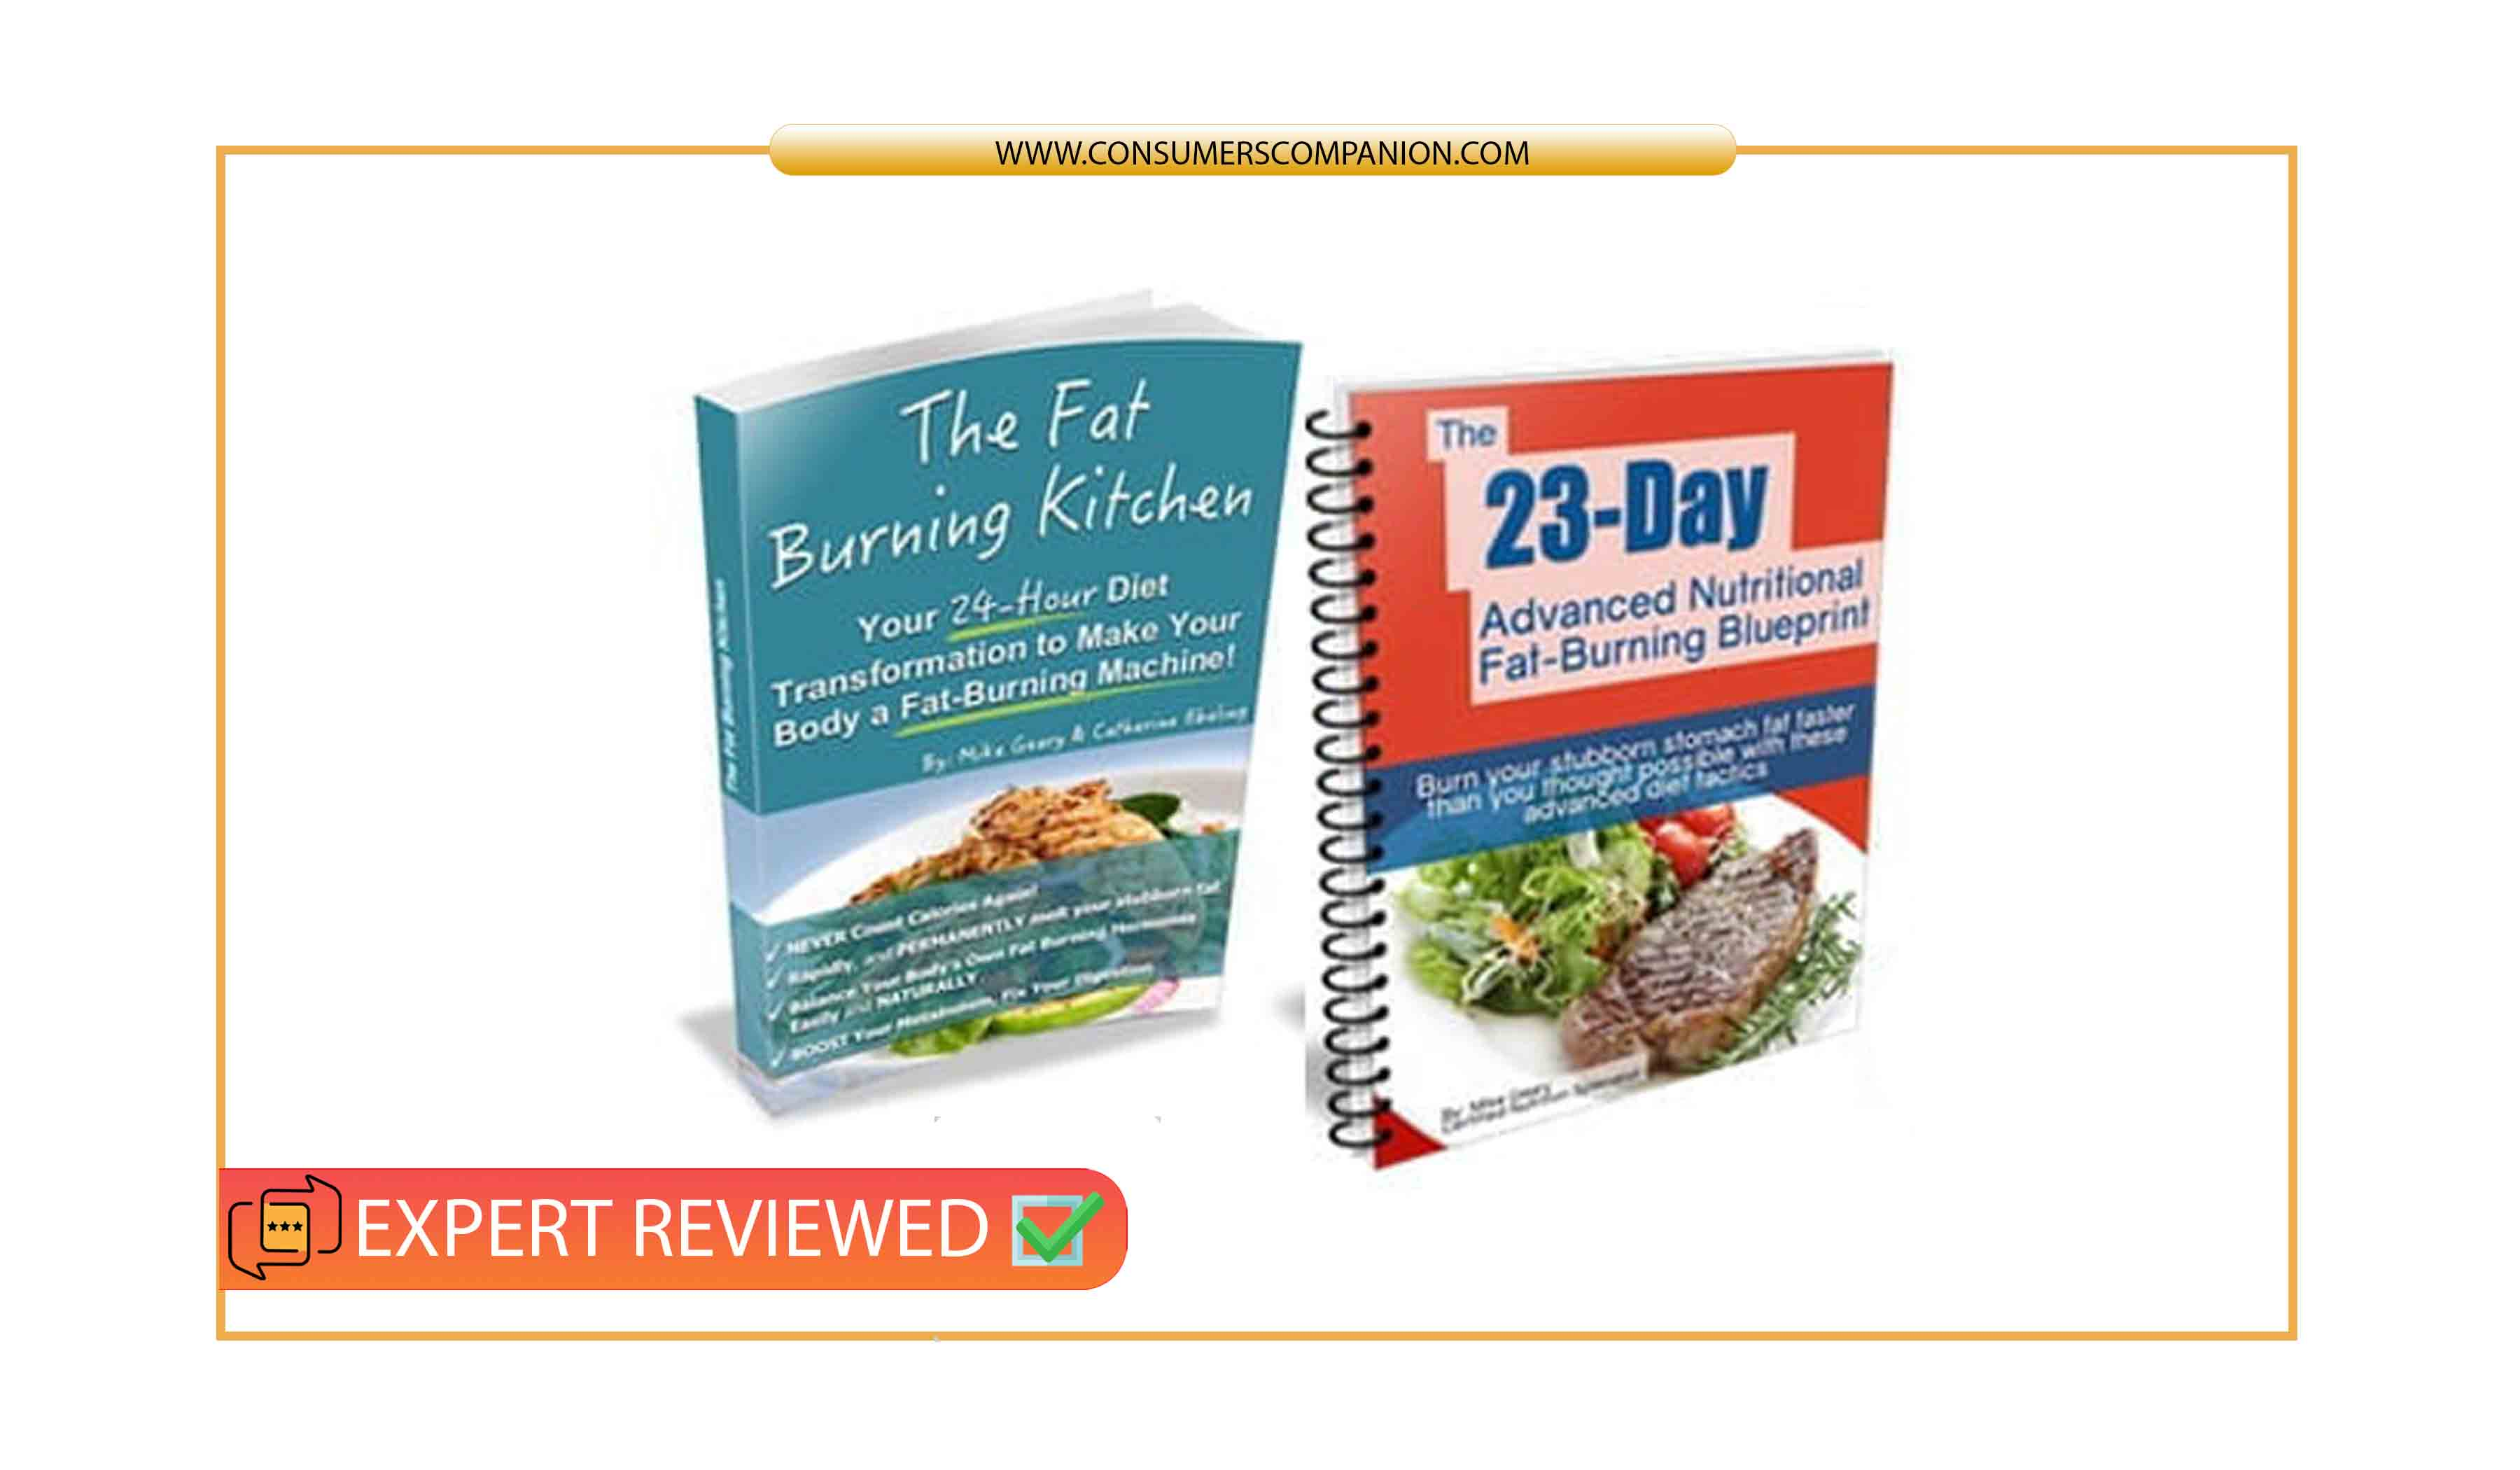 The Fat Burning kitchen review